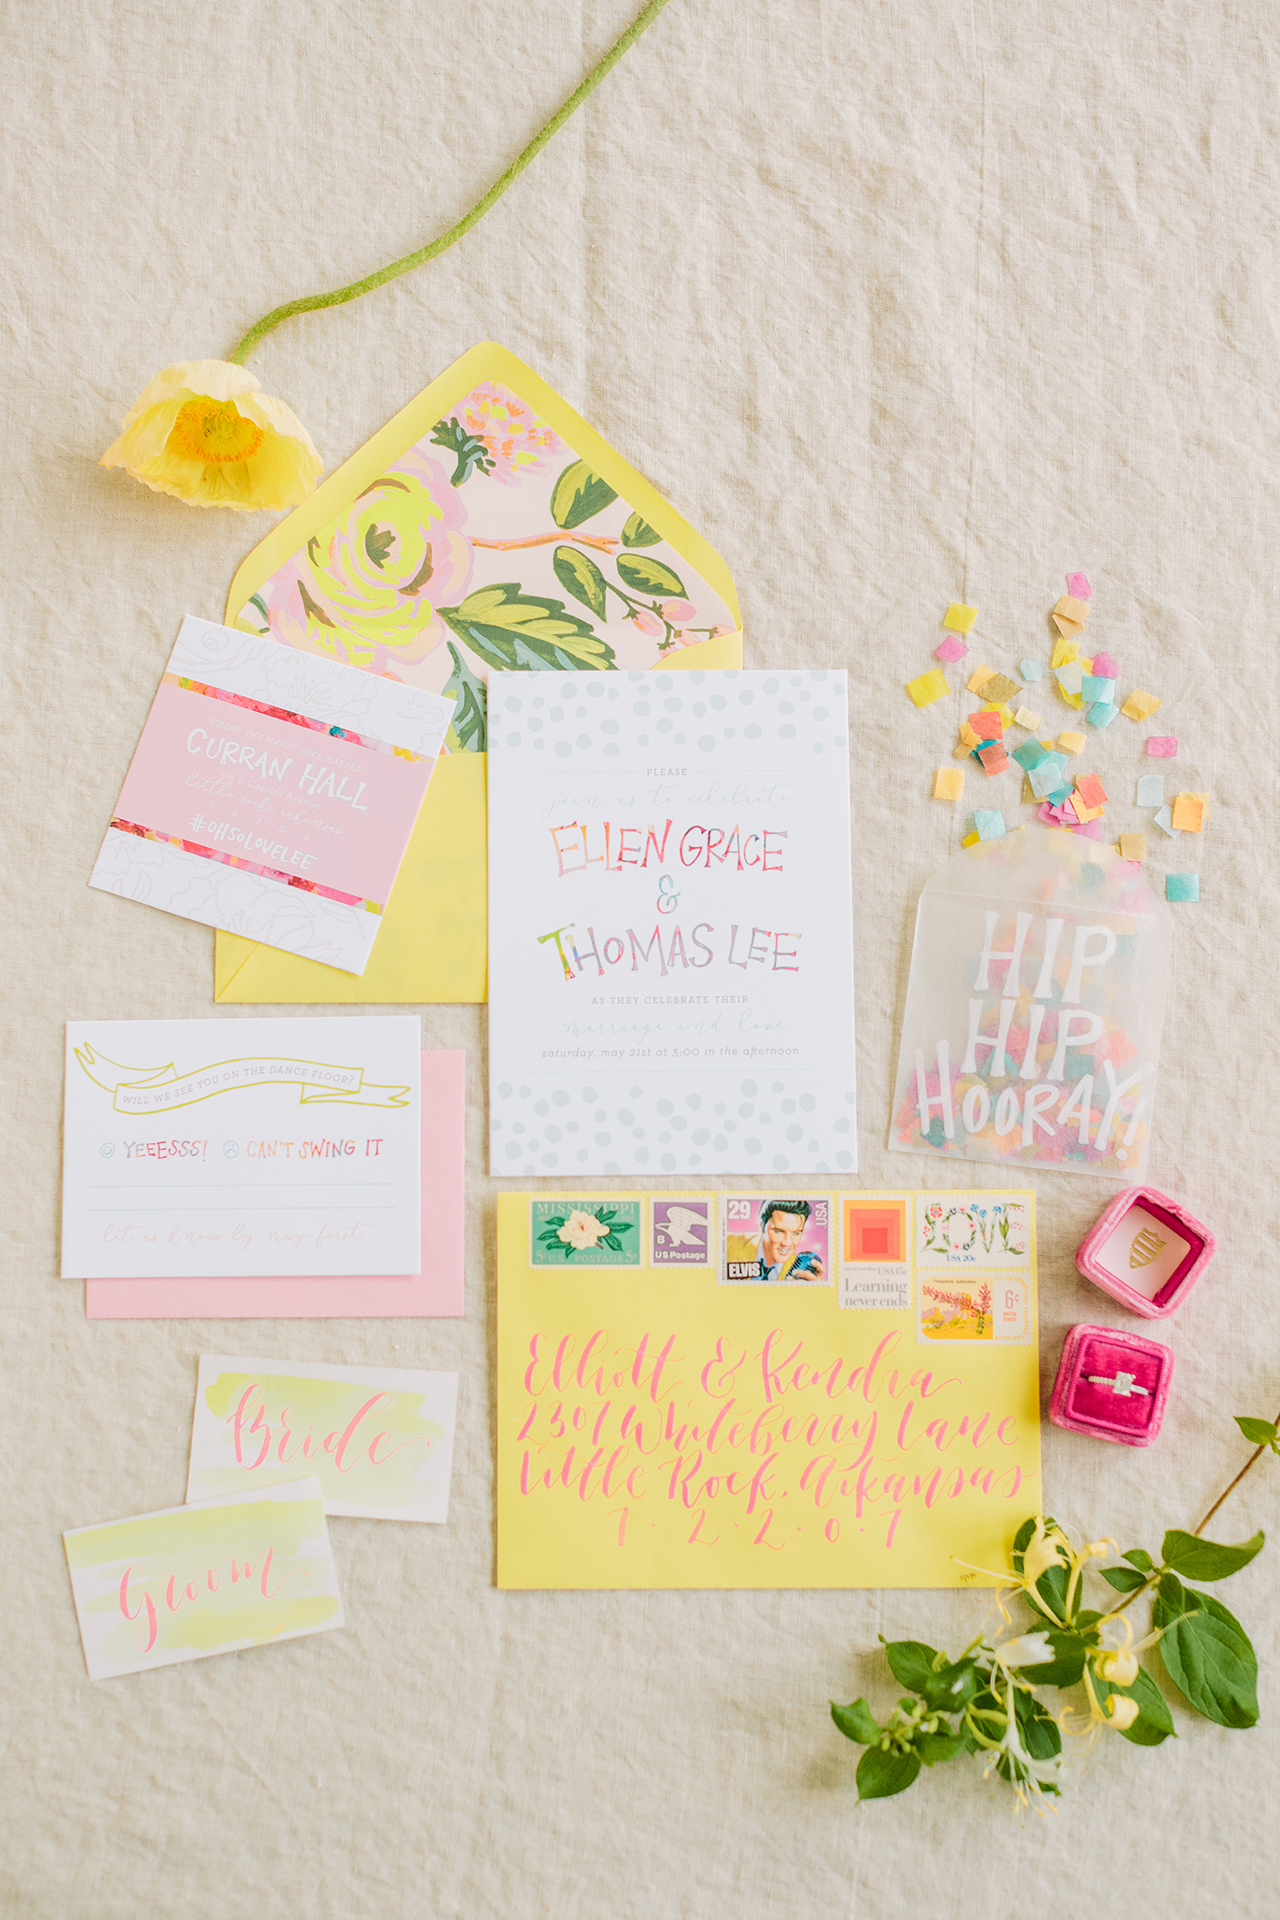 A bright, modern, and colorful wedding invitation suite by Goldie Design Co.